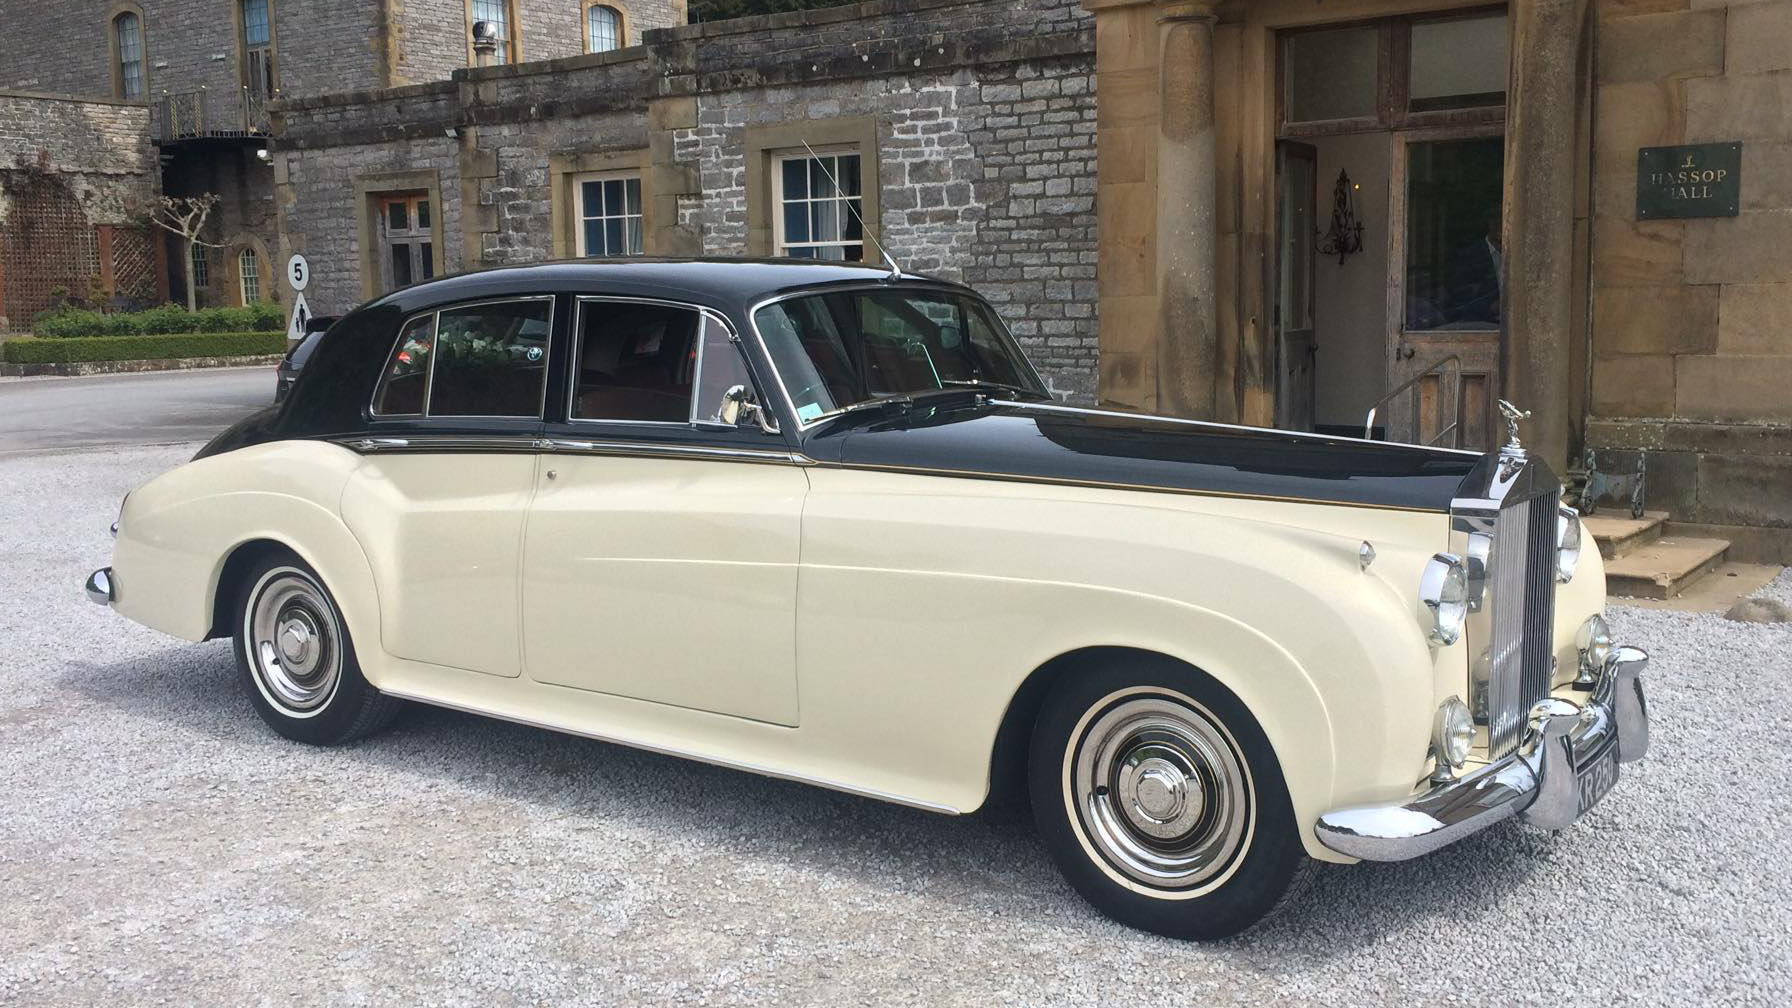 Classic Yorkshire Wedding Car hire available to hire for weddings